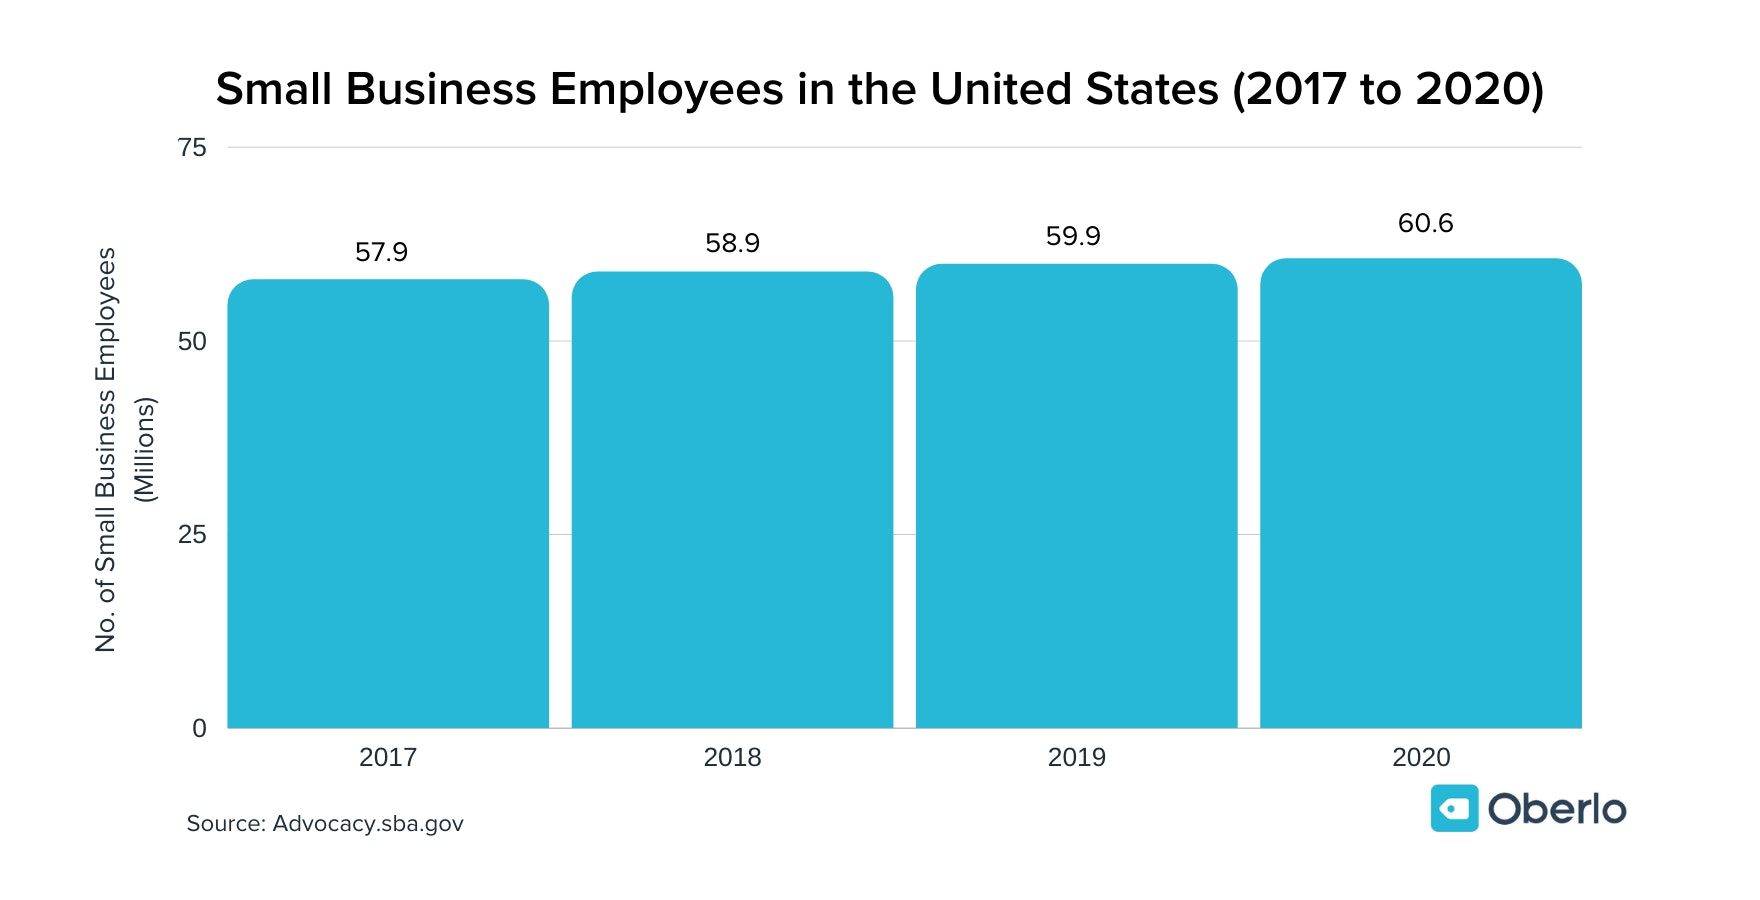 how many small businesses employees are there in the us